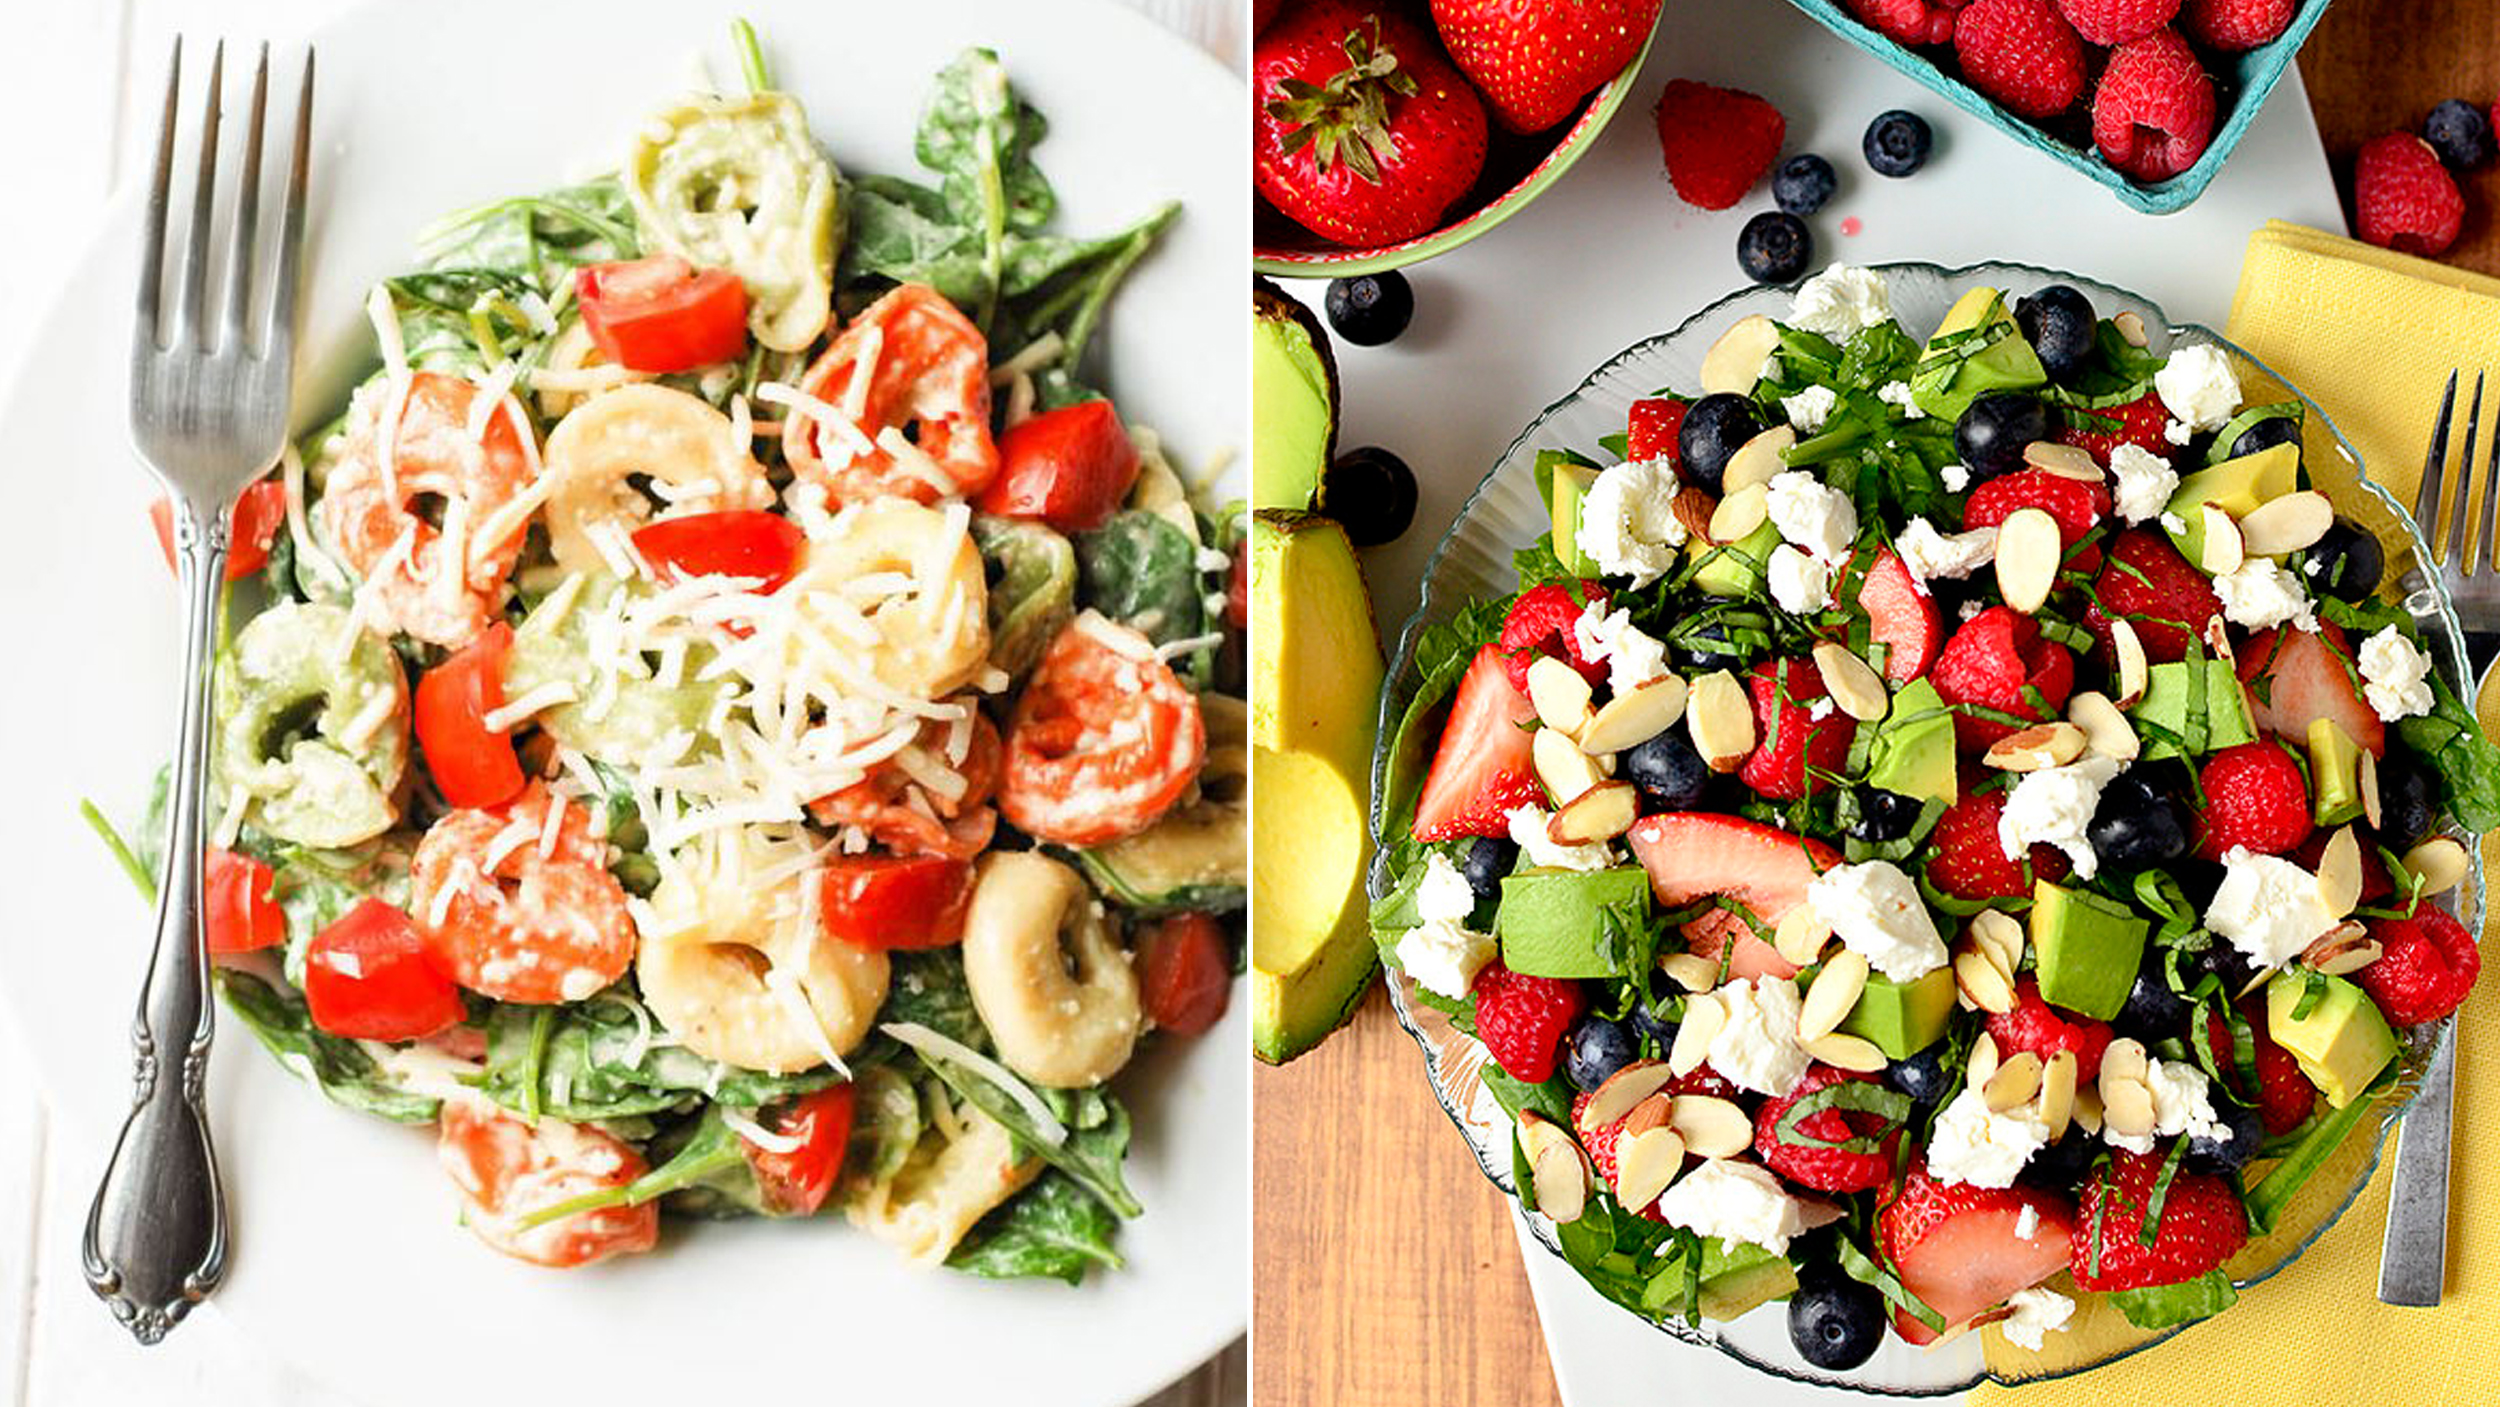 7 pinterest approved healthy summer salad recipes - Cuisine pinterest ...